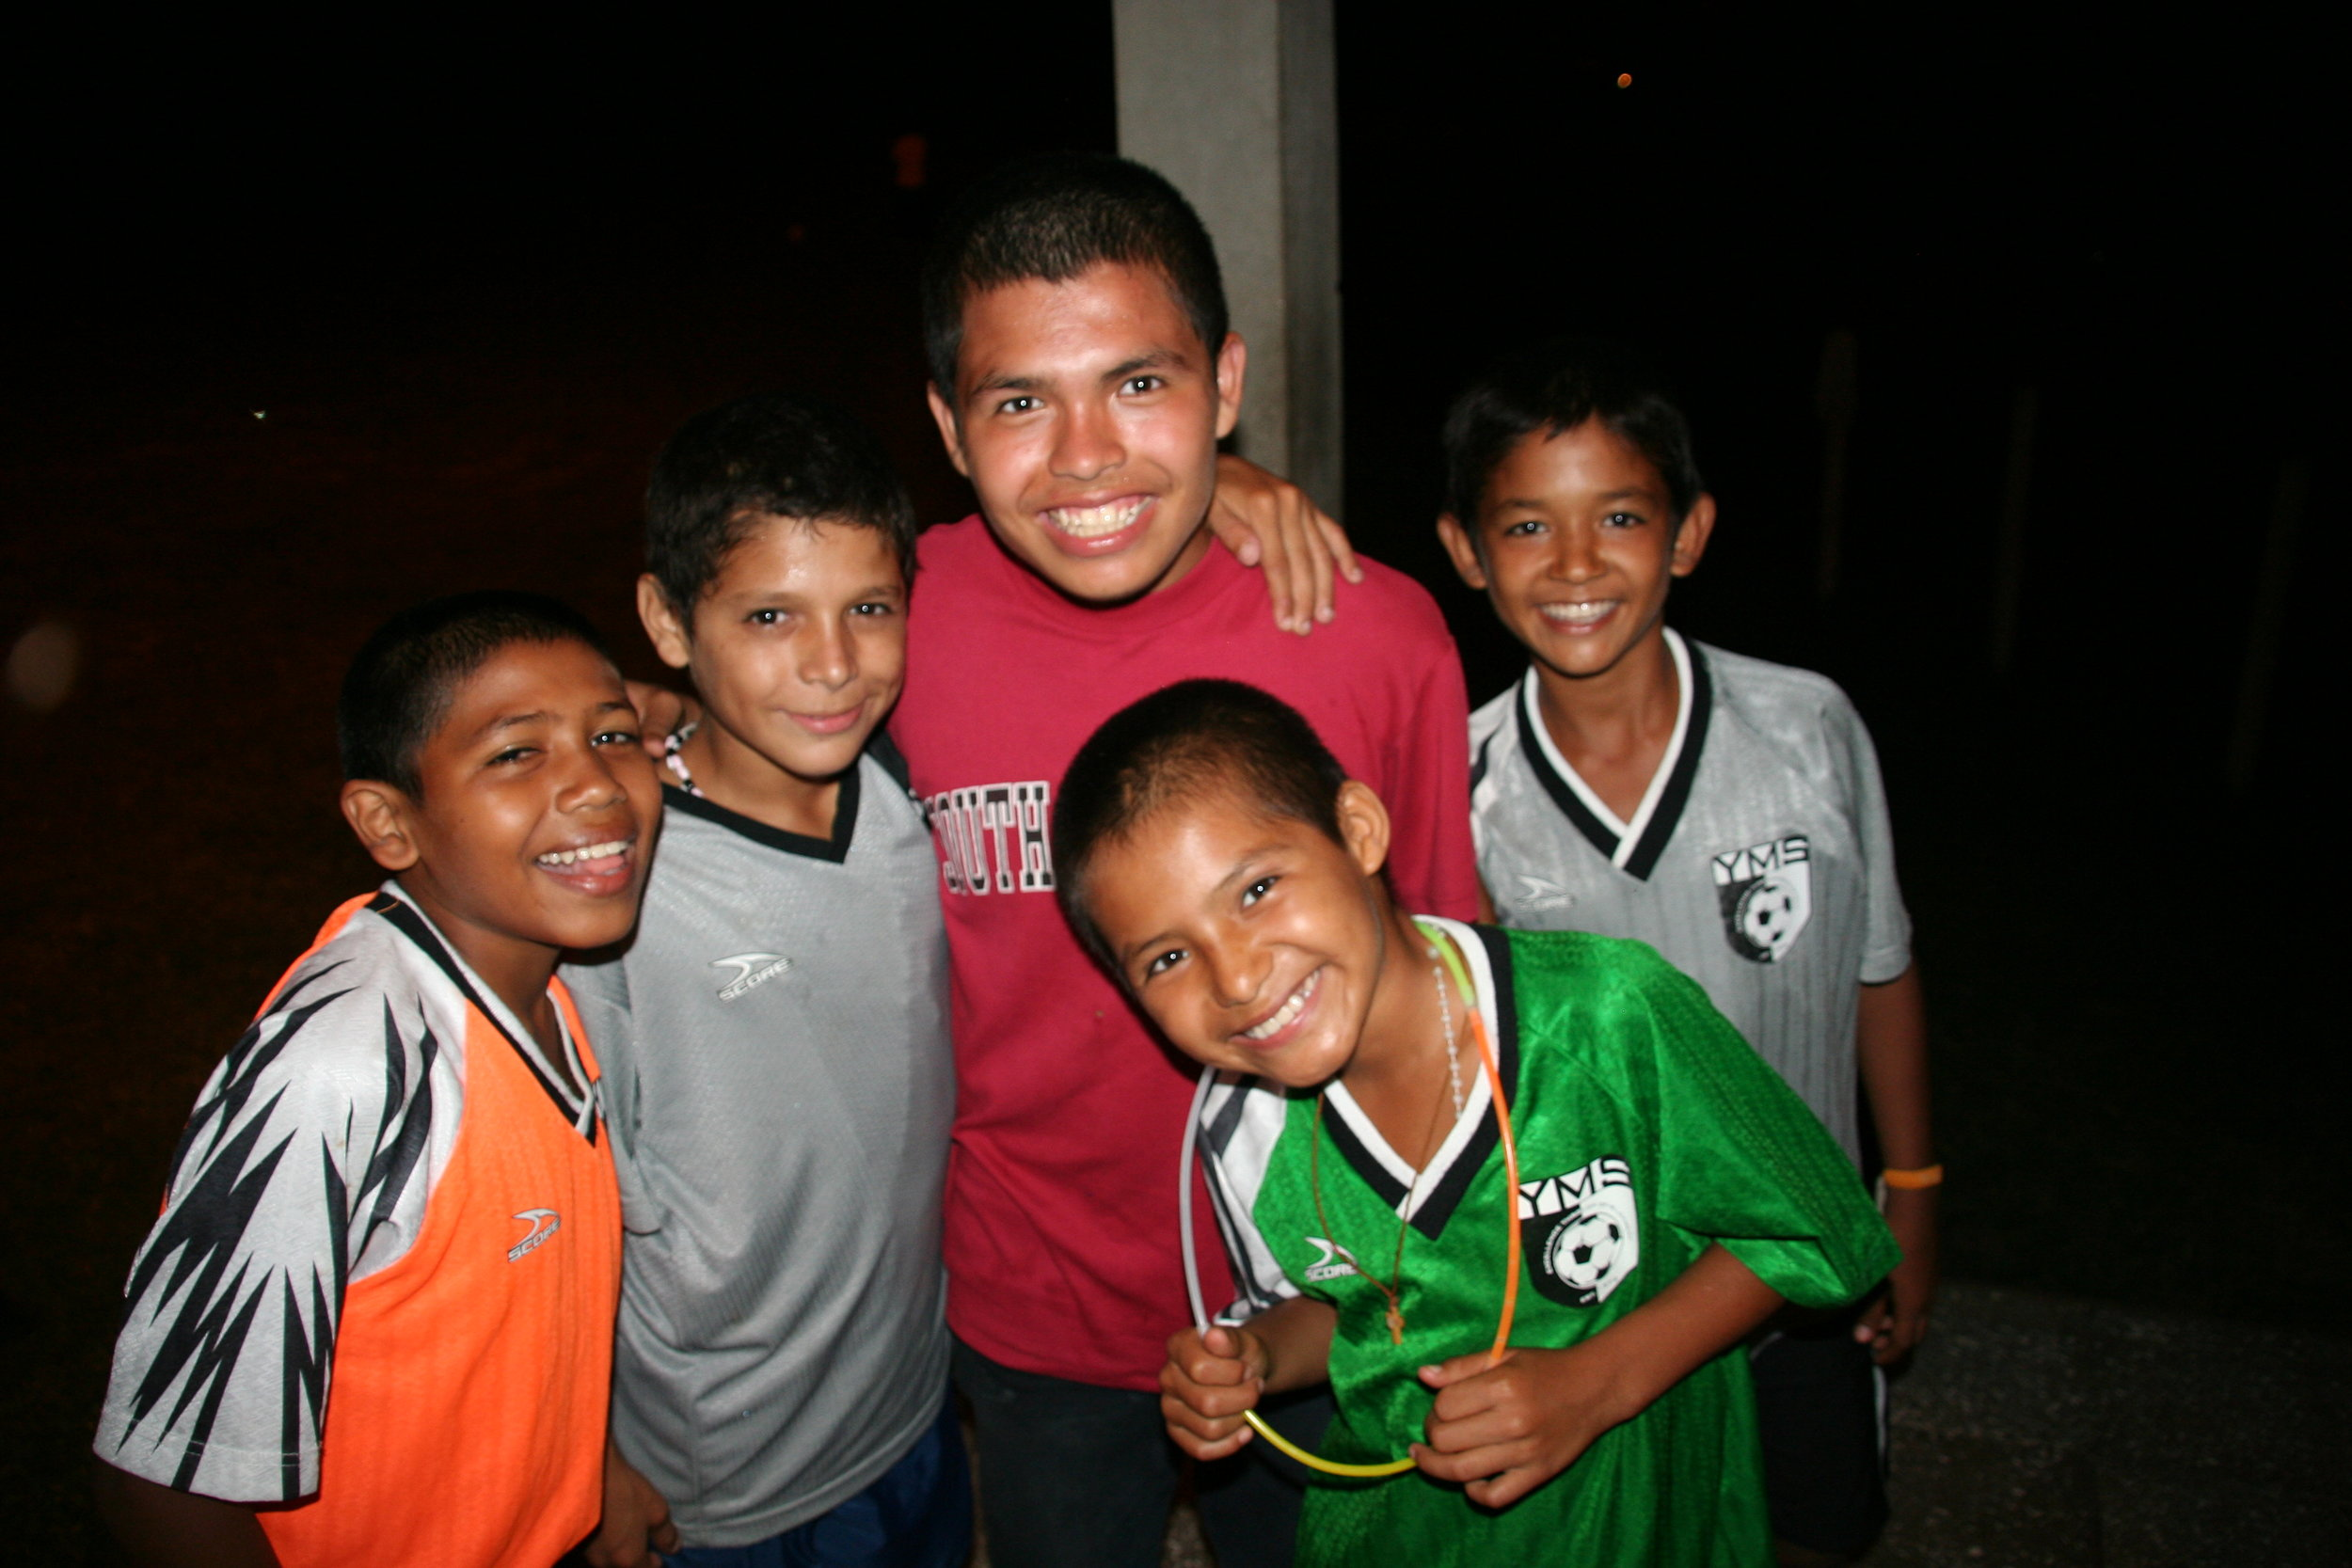 Vicente (pictured in the green shirt to the right) and friends posing for a photo back in 2009.